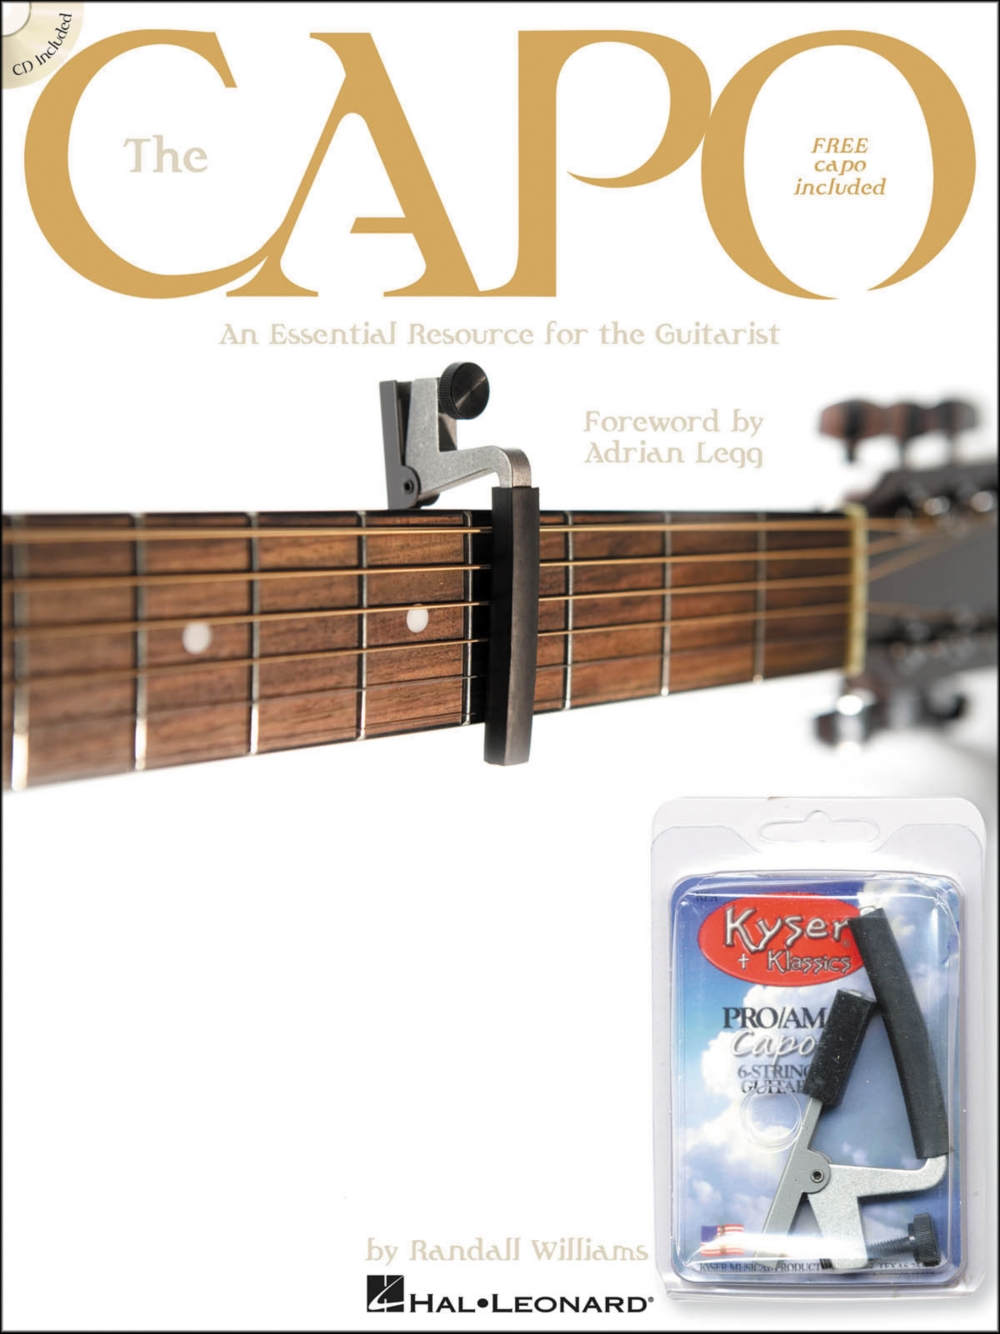 Hal Leonard The Capo Book with CD & Free Kyser Capo by Hal Leonard